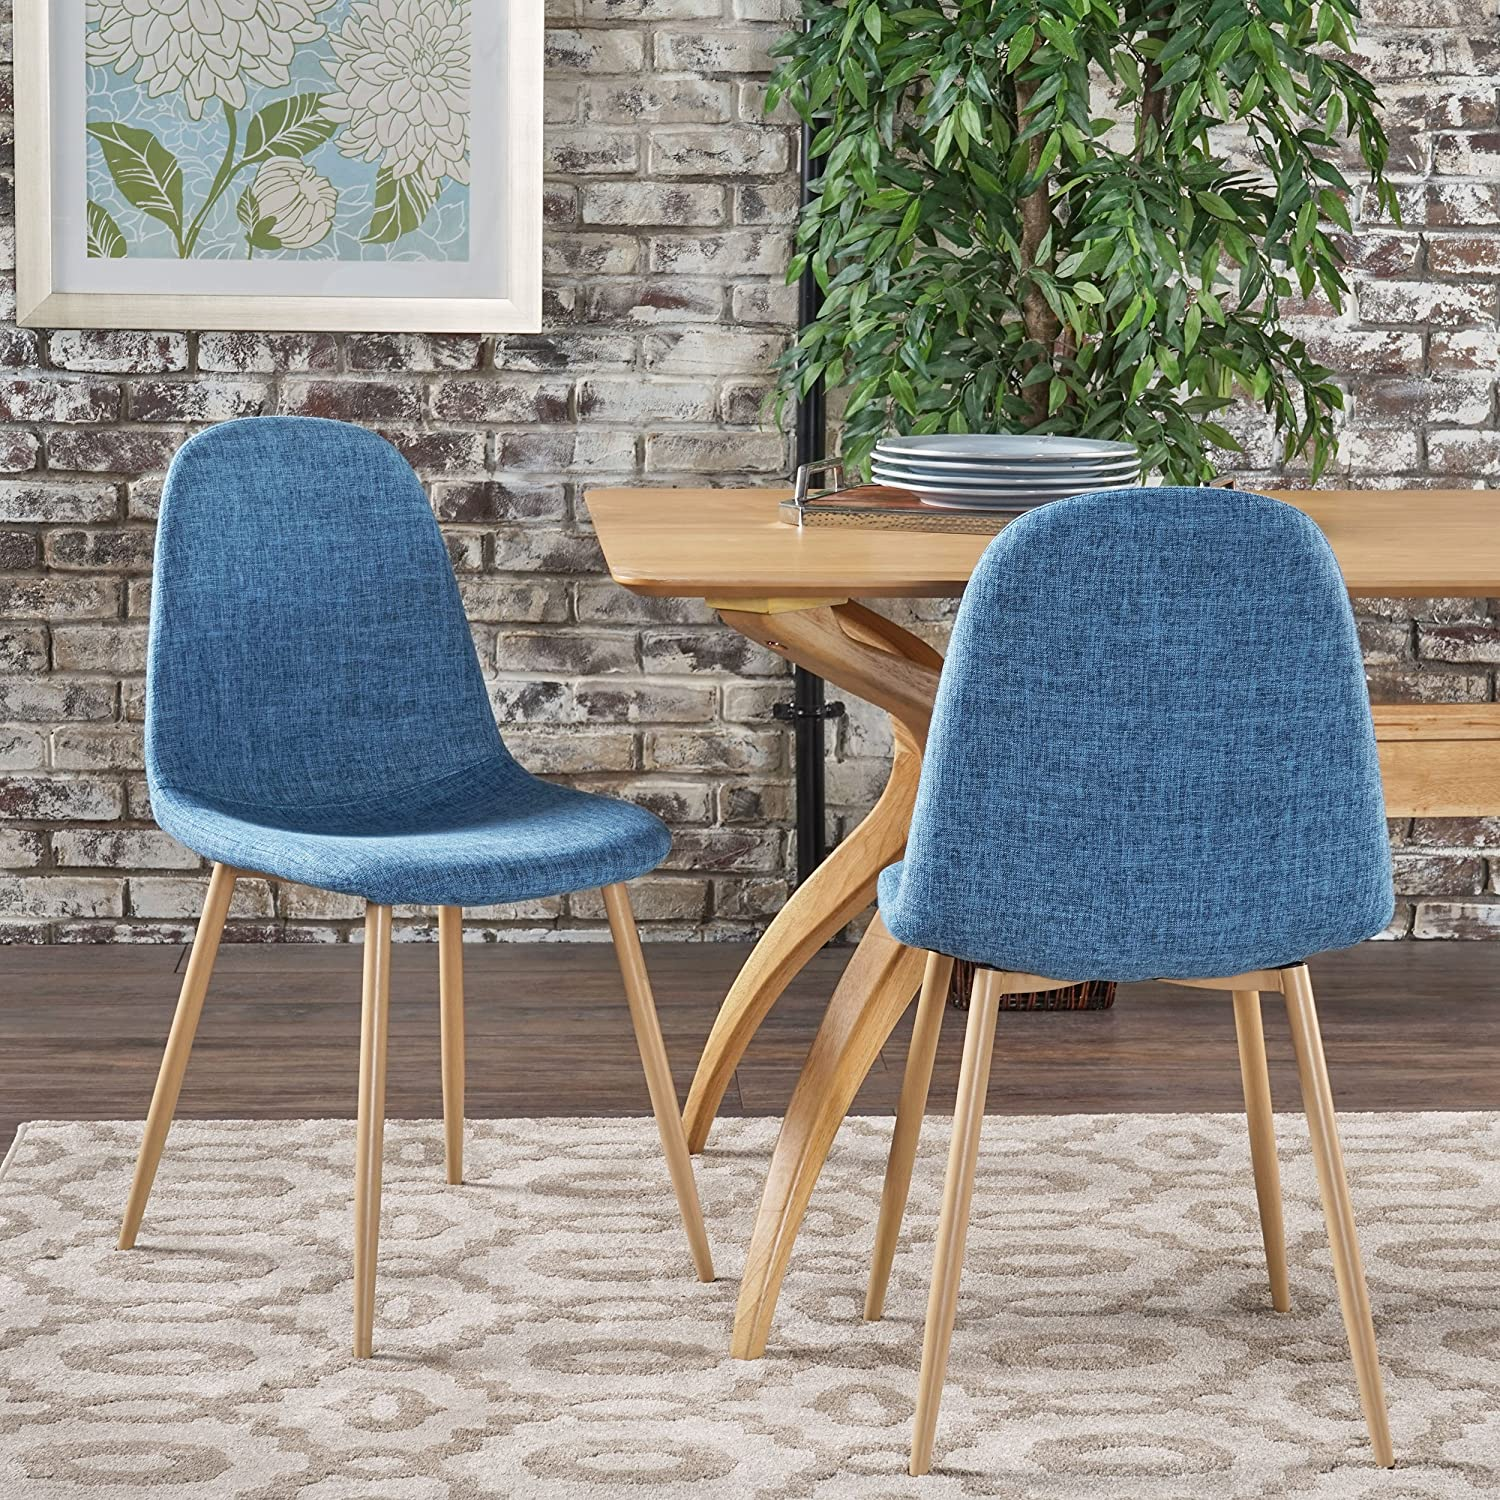 Christopher Knight Home Raina Mid Century Modern Dining Chairs With Wood Finished Metal Legs Set of 2 , Muted Blue Light Brown